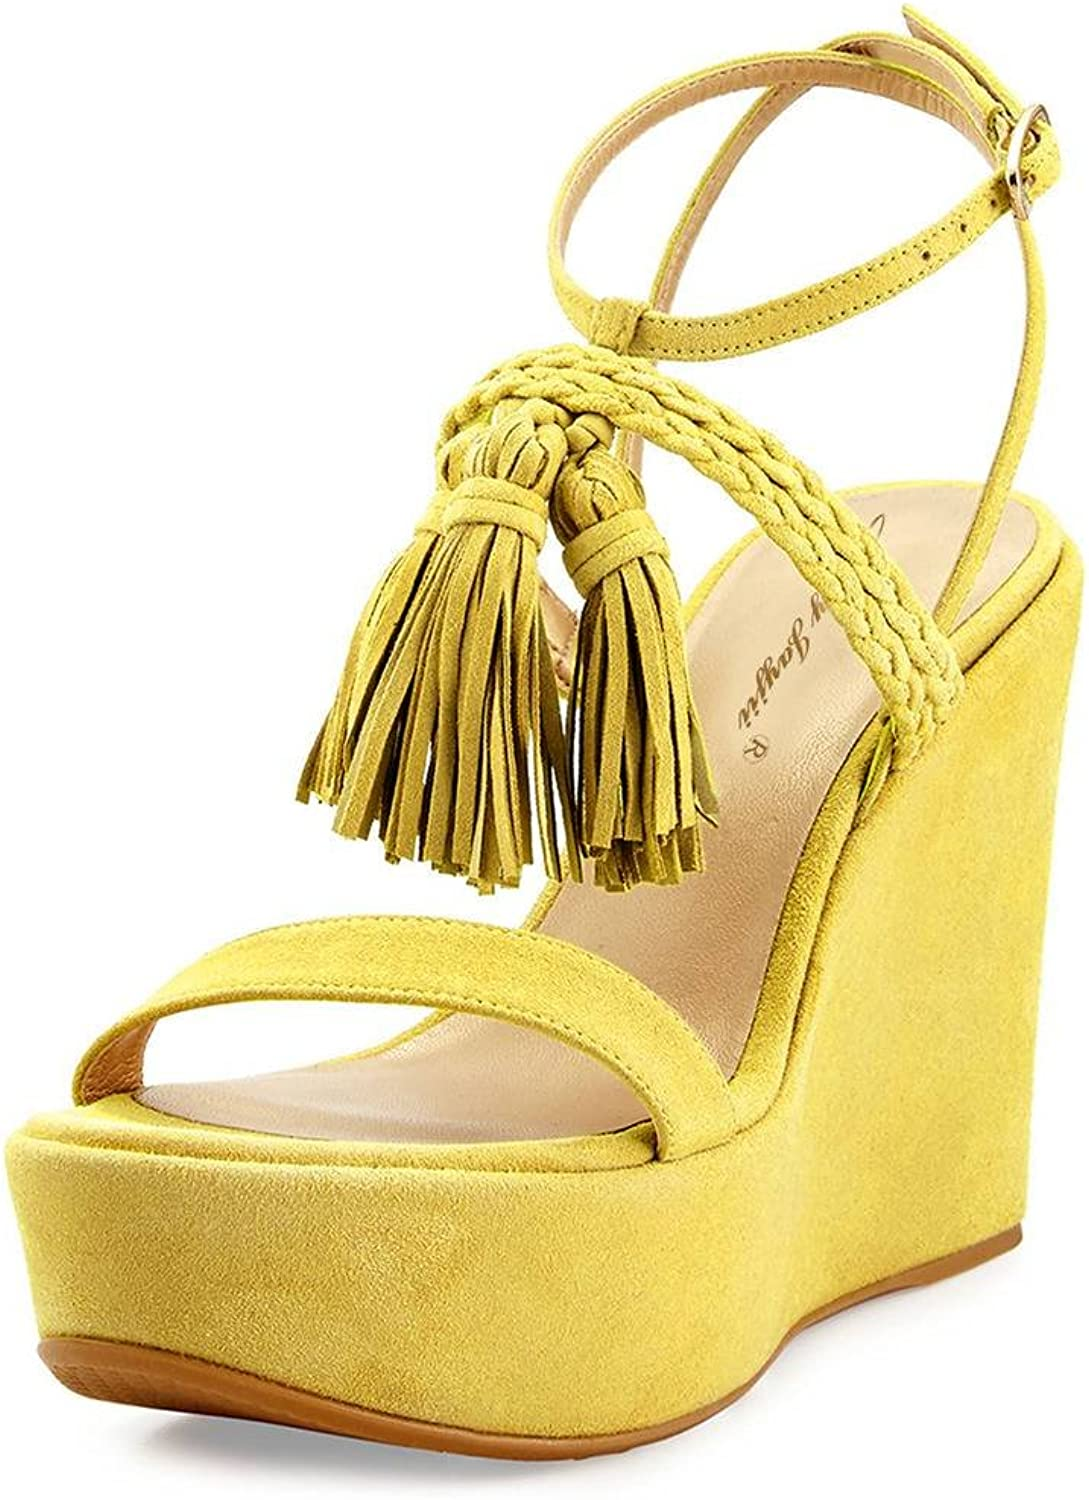 NJ Women Open Toe Platform Sandals Woven Lace up High Heel Wedge shoes with Fringes